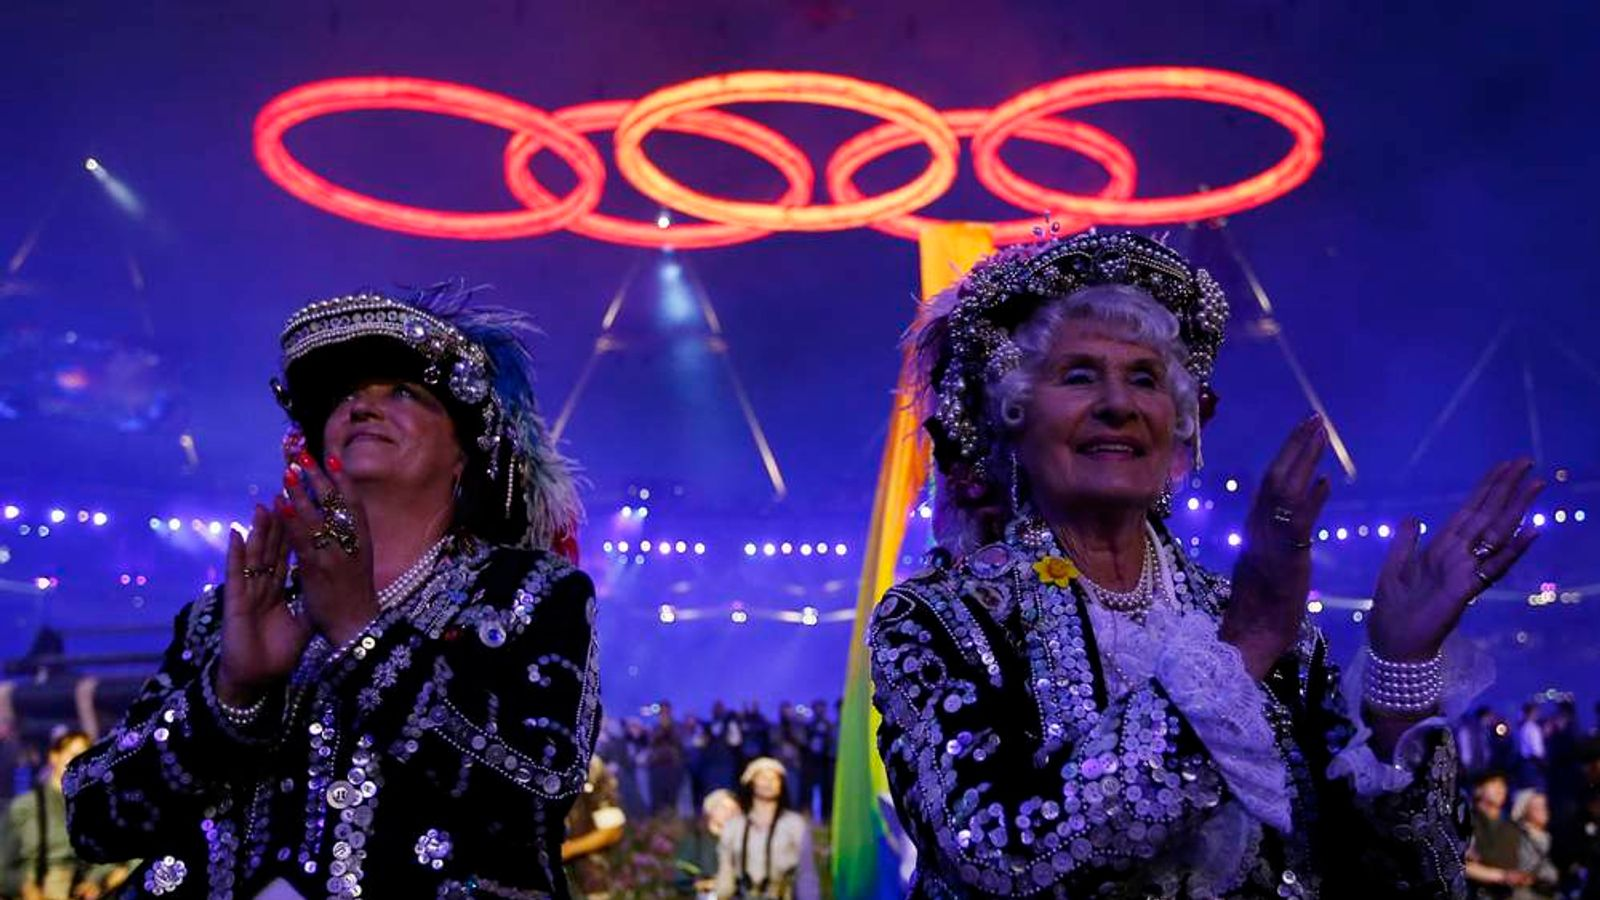 Performers at Olympic opening ceremony